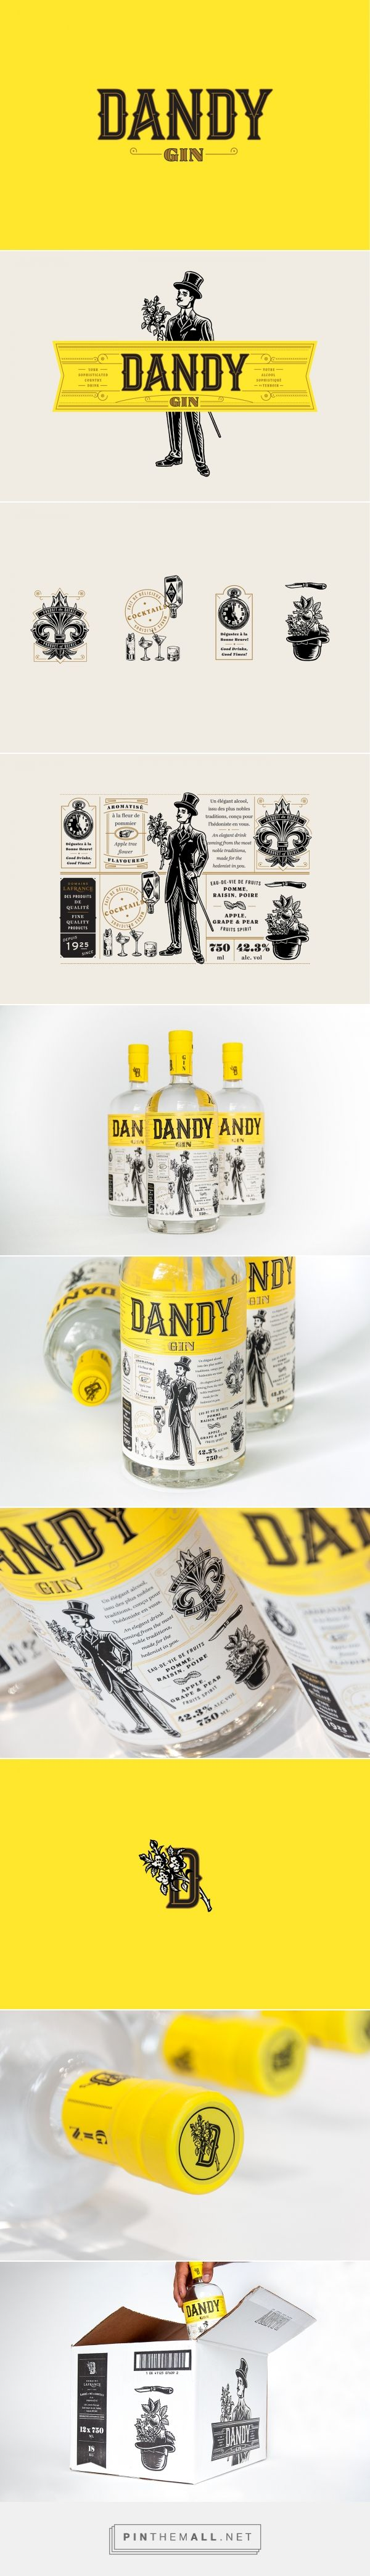 Dandy Gin Packaging by Polygraphe Studio | Fivestar Branding Agency – Design and Branding Agency & Curated Inspiration Gallery